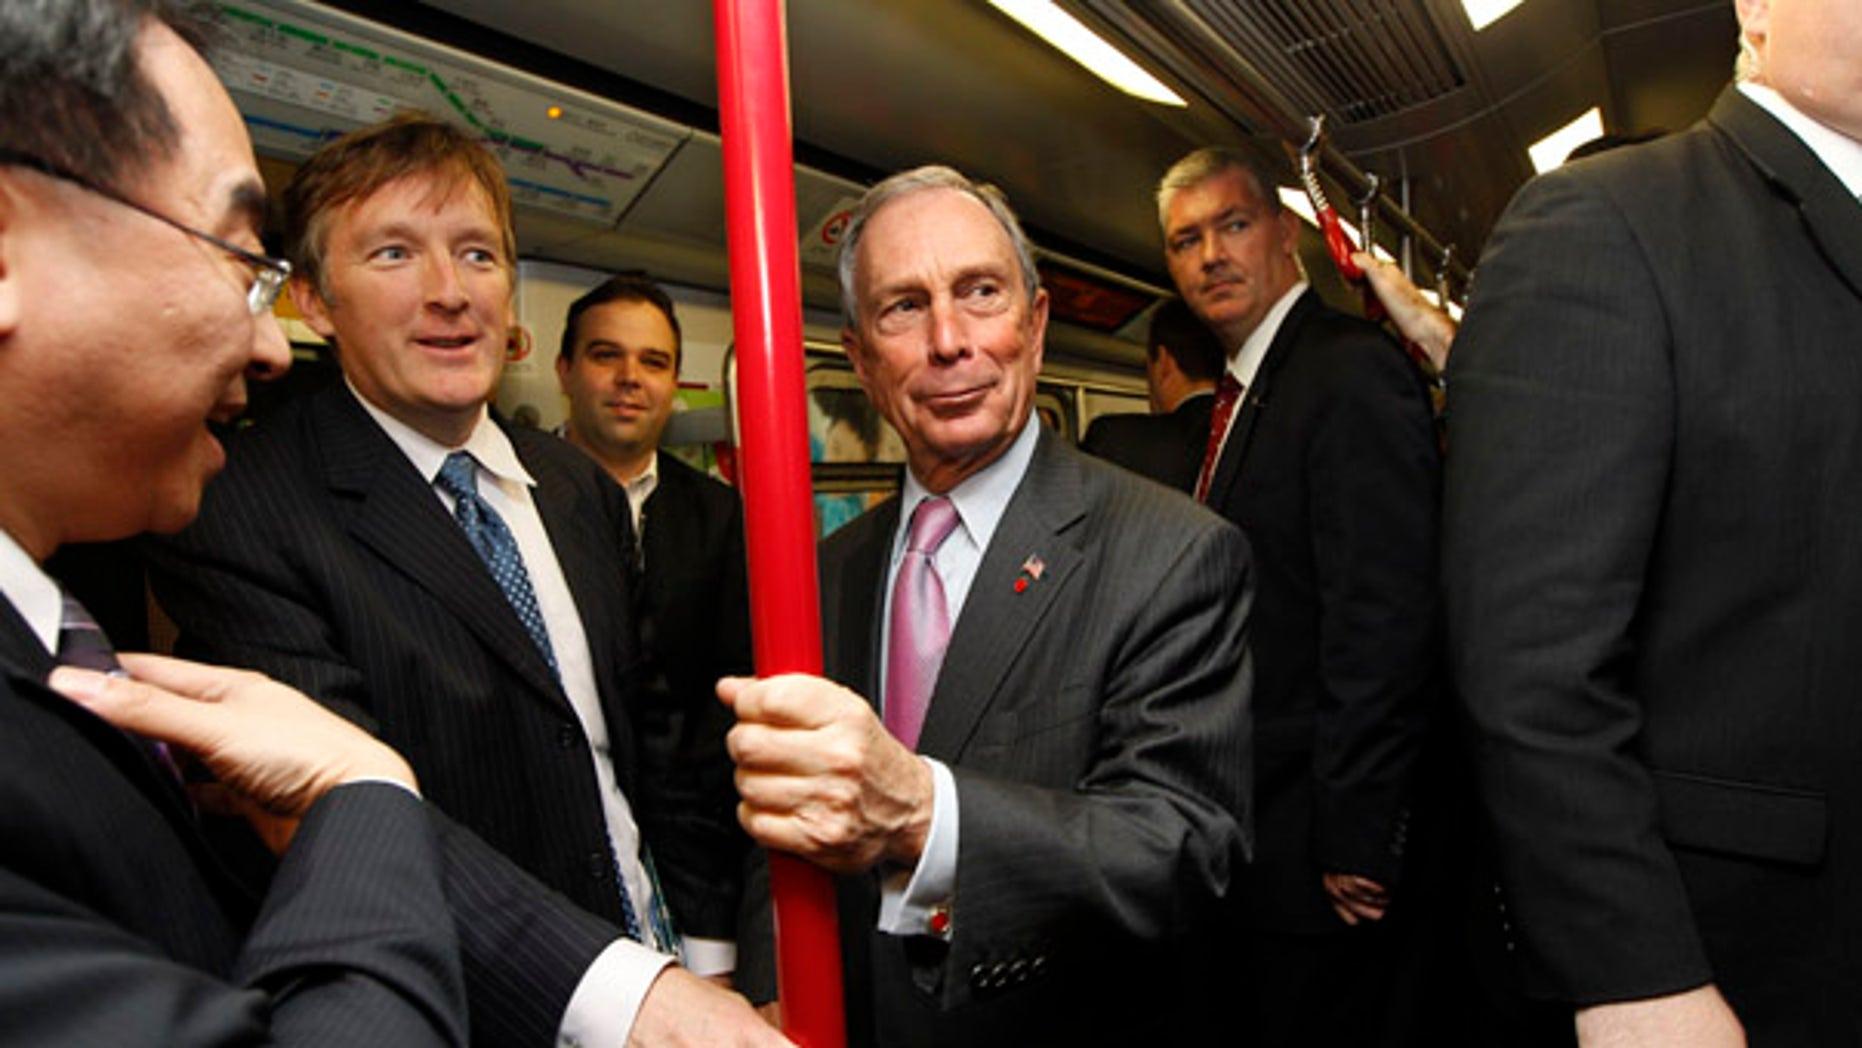 FILE: In this Nov. 6 picture, New York City Mayor Michael Bloomberg rides on the Mass Transit Railway, an underground train in Hong Kong, during a convention of large city leaders who met to discuss climate change.